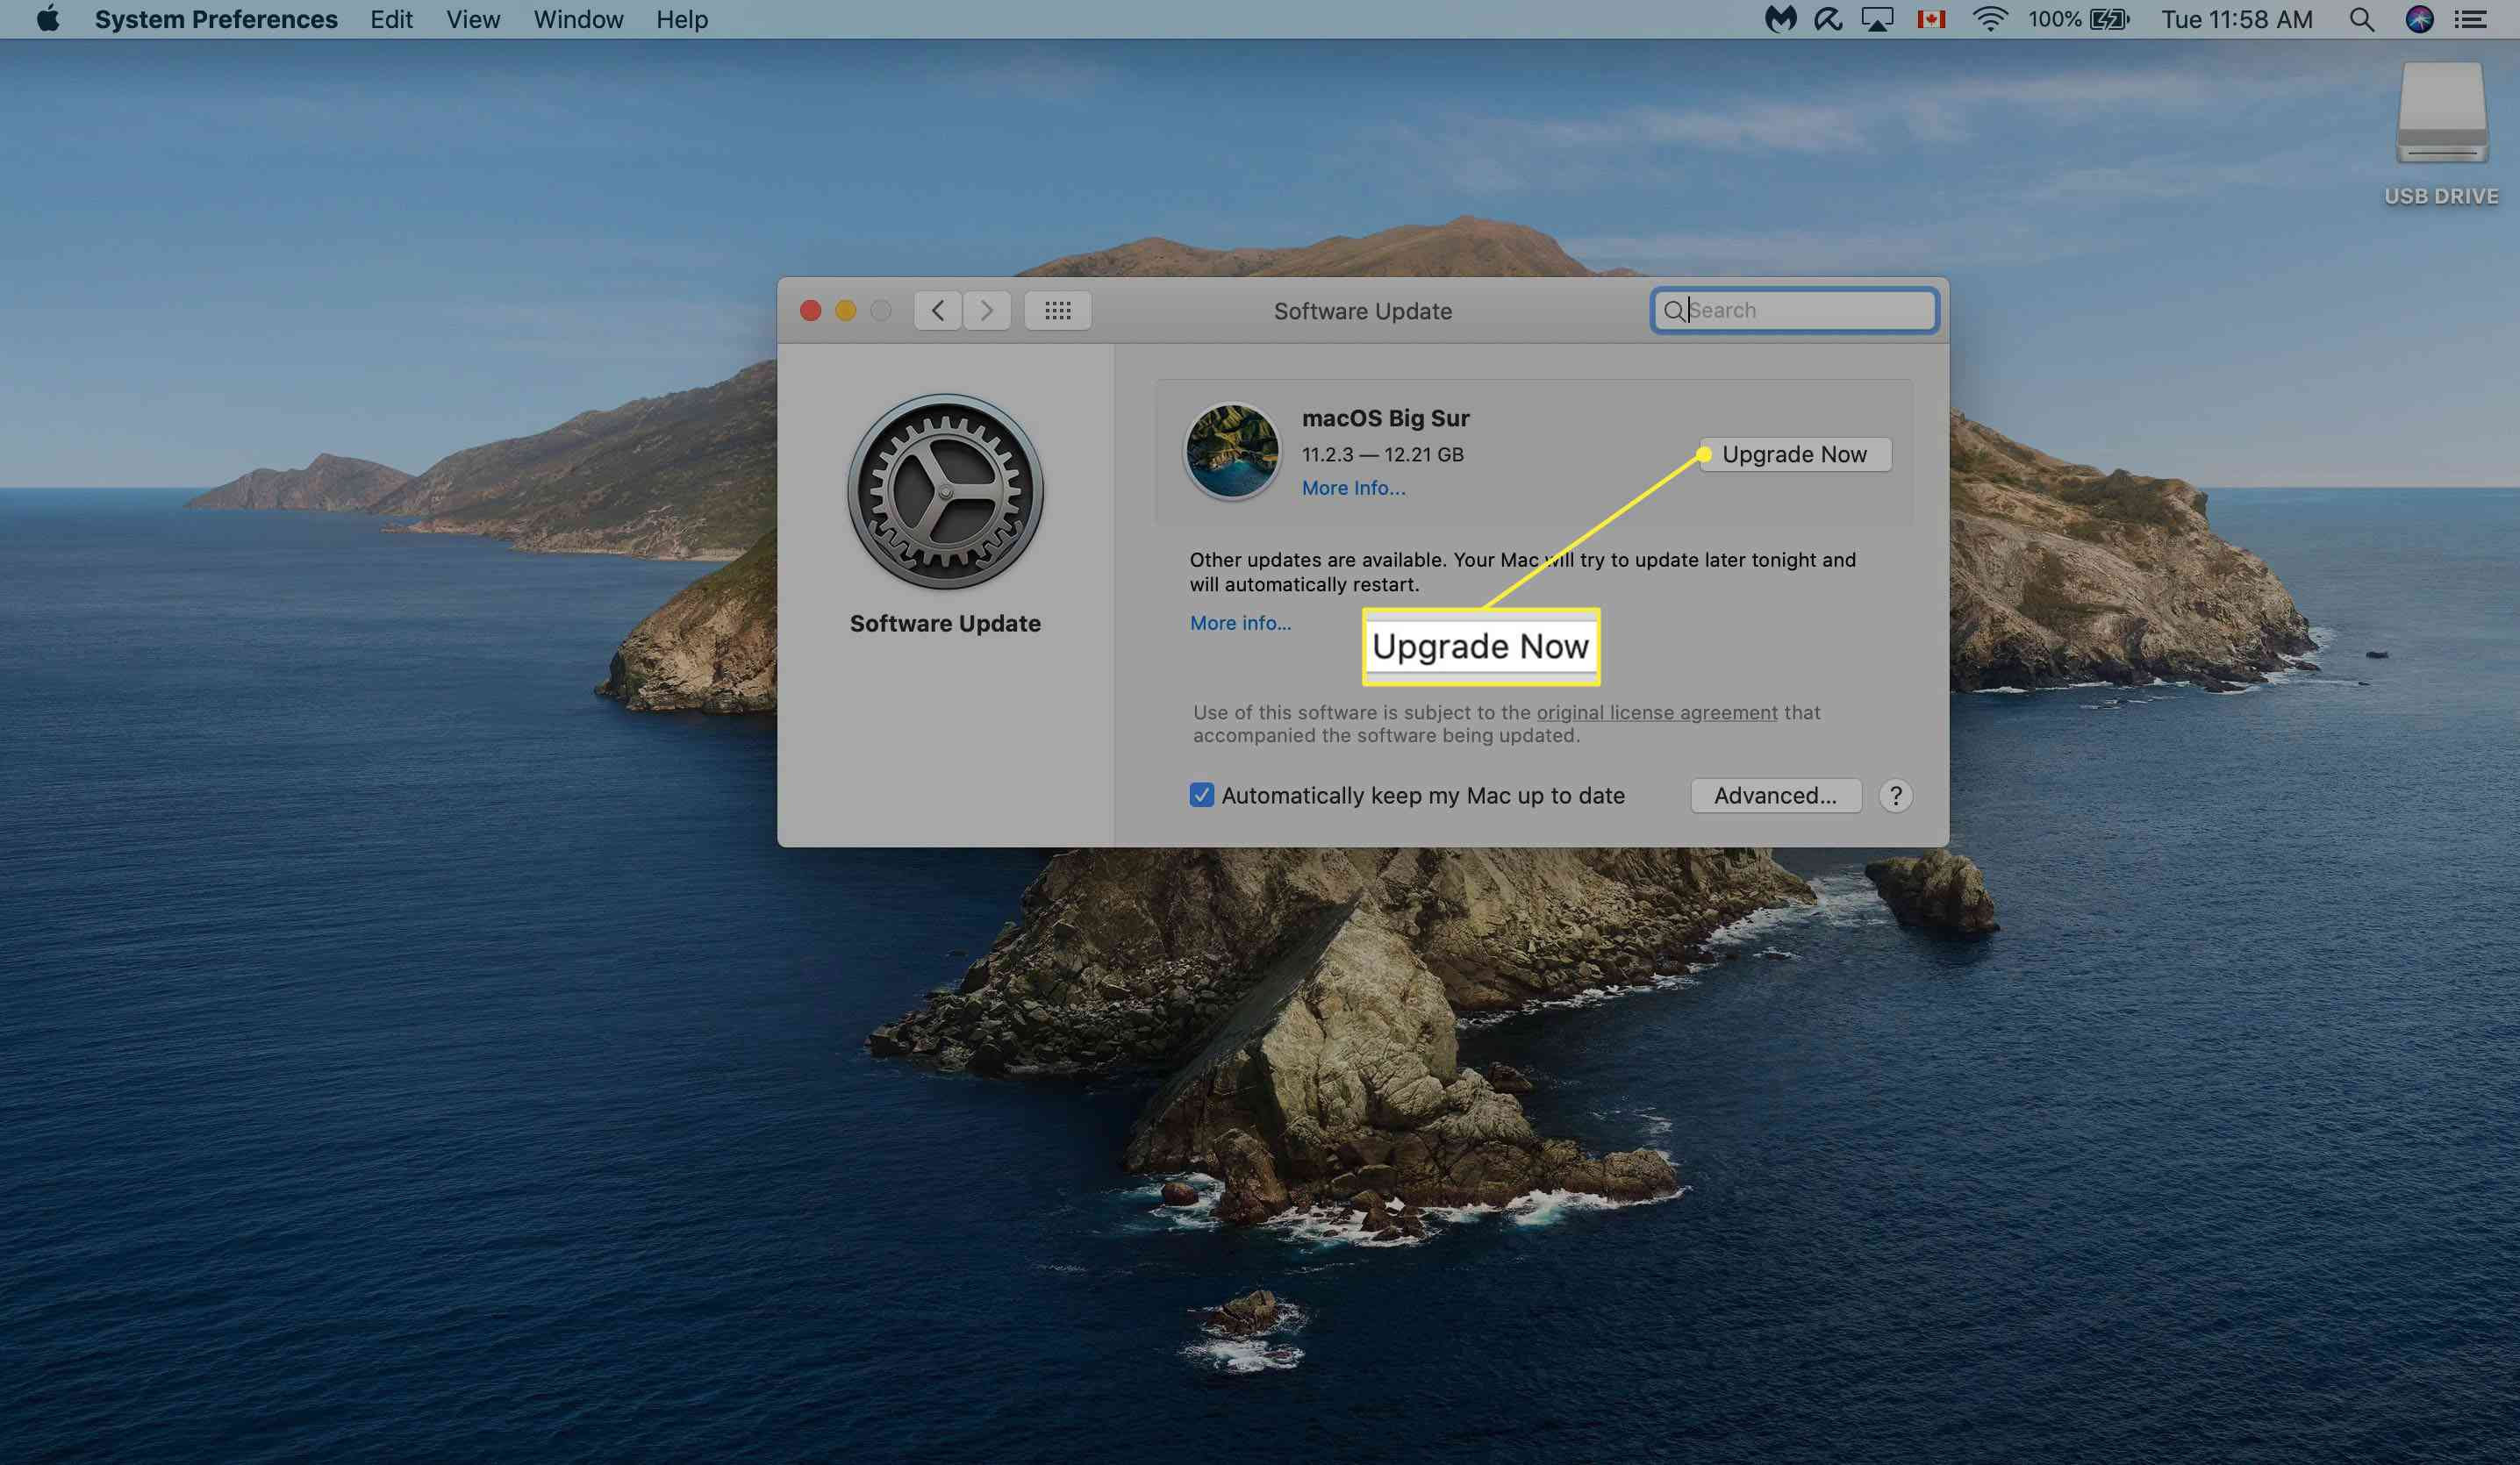 Confirming Software Update on Mac.